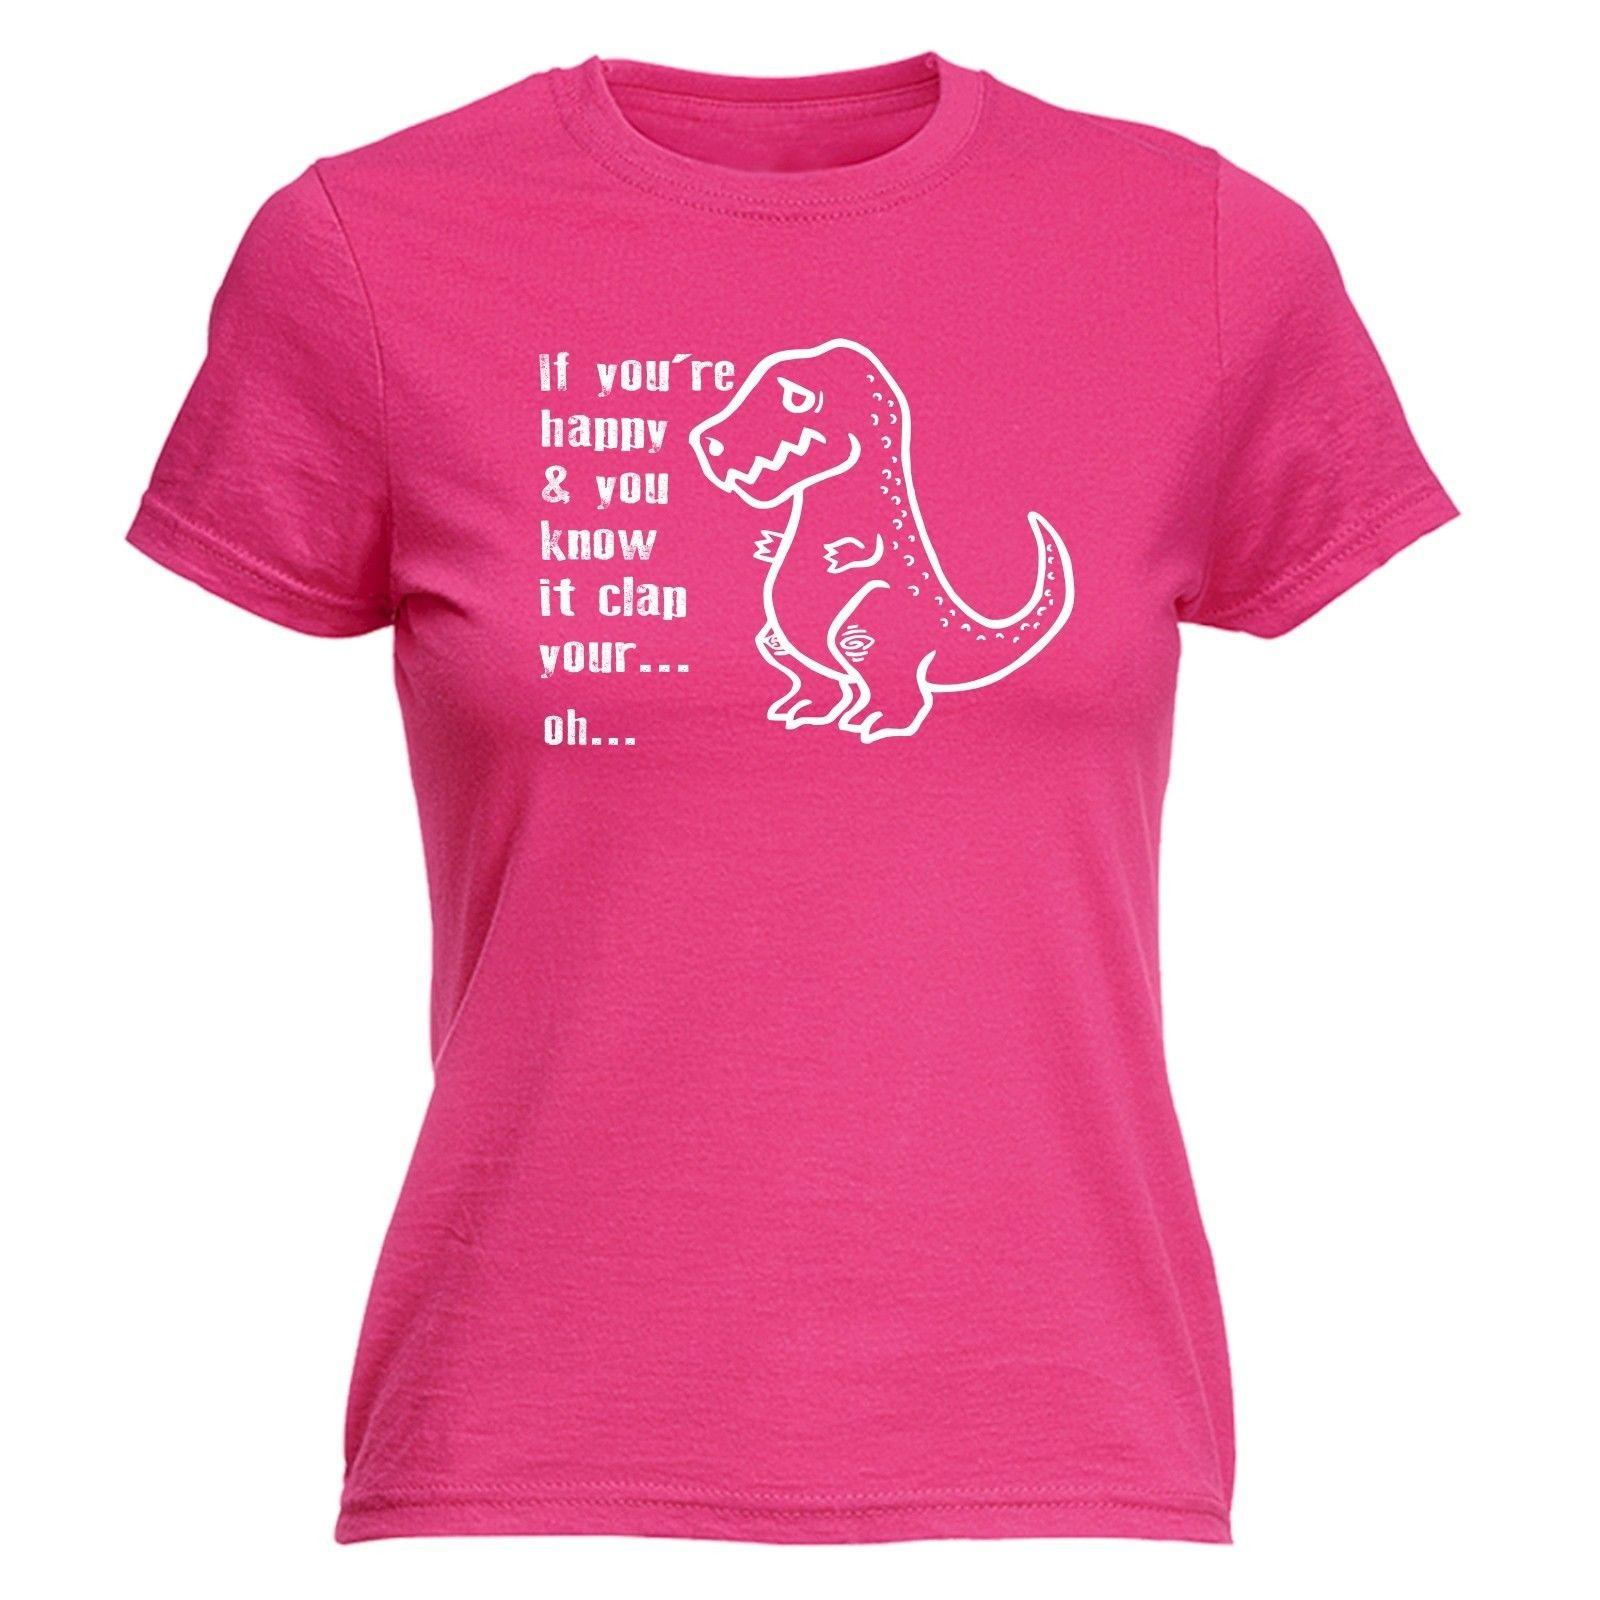 If Youre Happy Clap Your Hands WOMENS T SHIRT Dinosaur T Rex Funny Birthday  Gift Tees Custom Jersey T Shirt White T Shirt Designs Awesome T Shirt Sites  From ... 9ece9b54a3